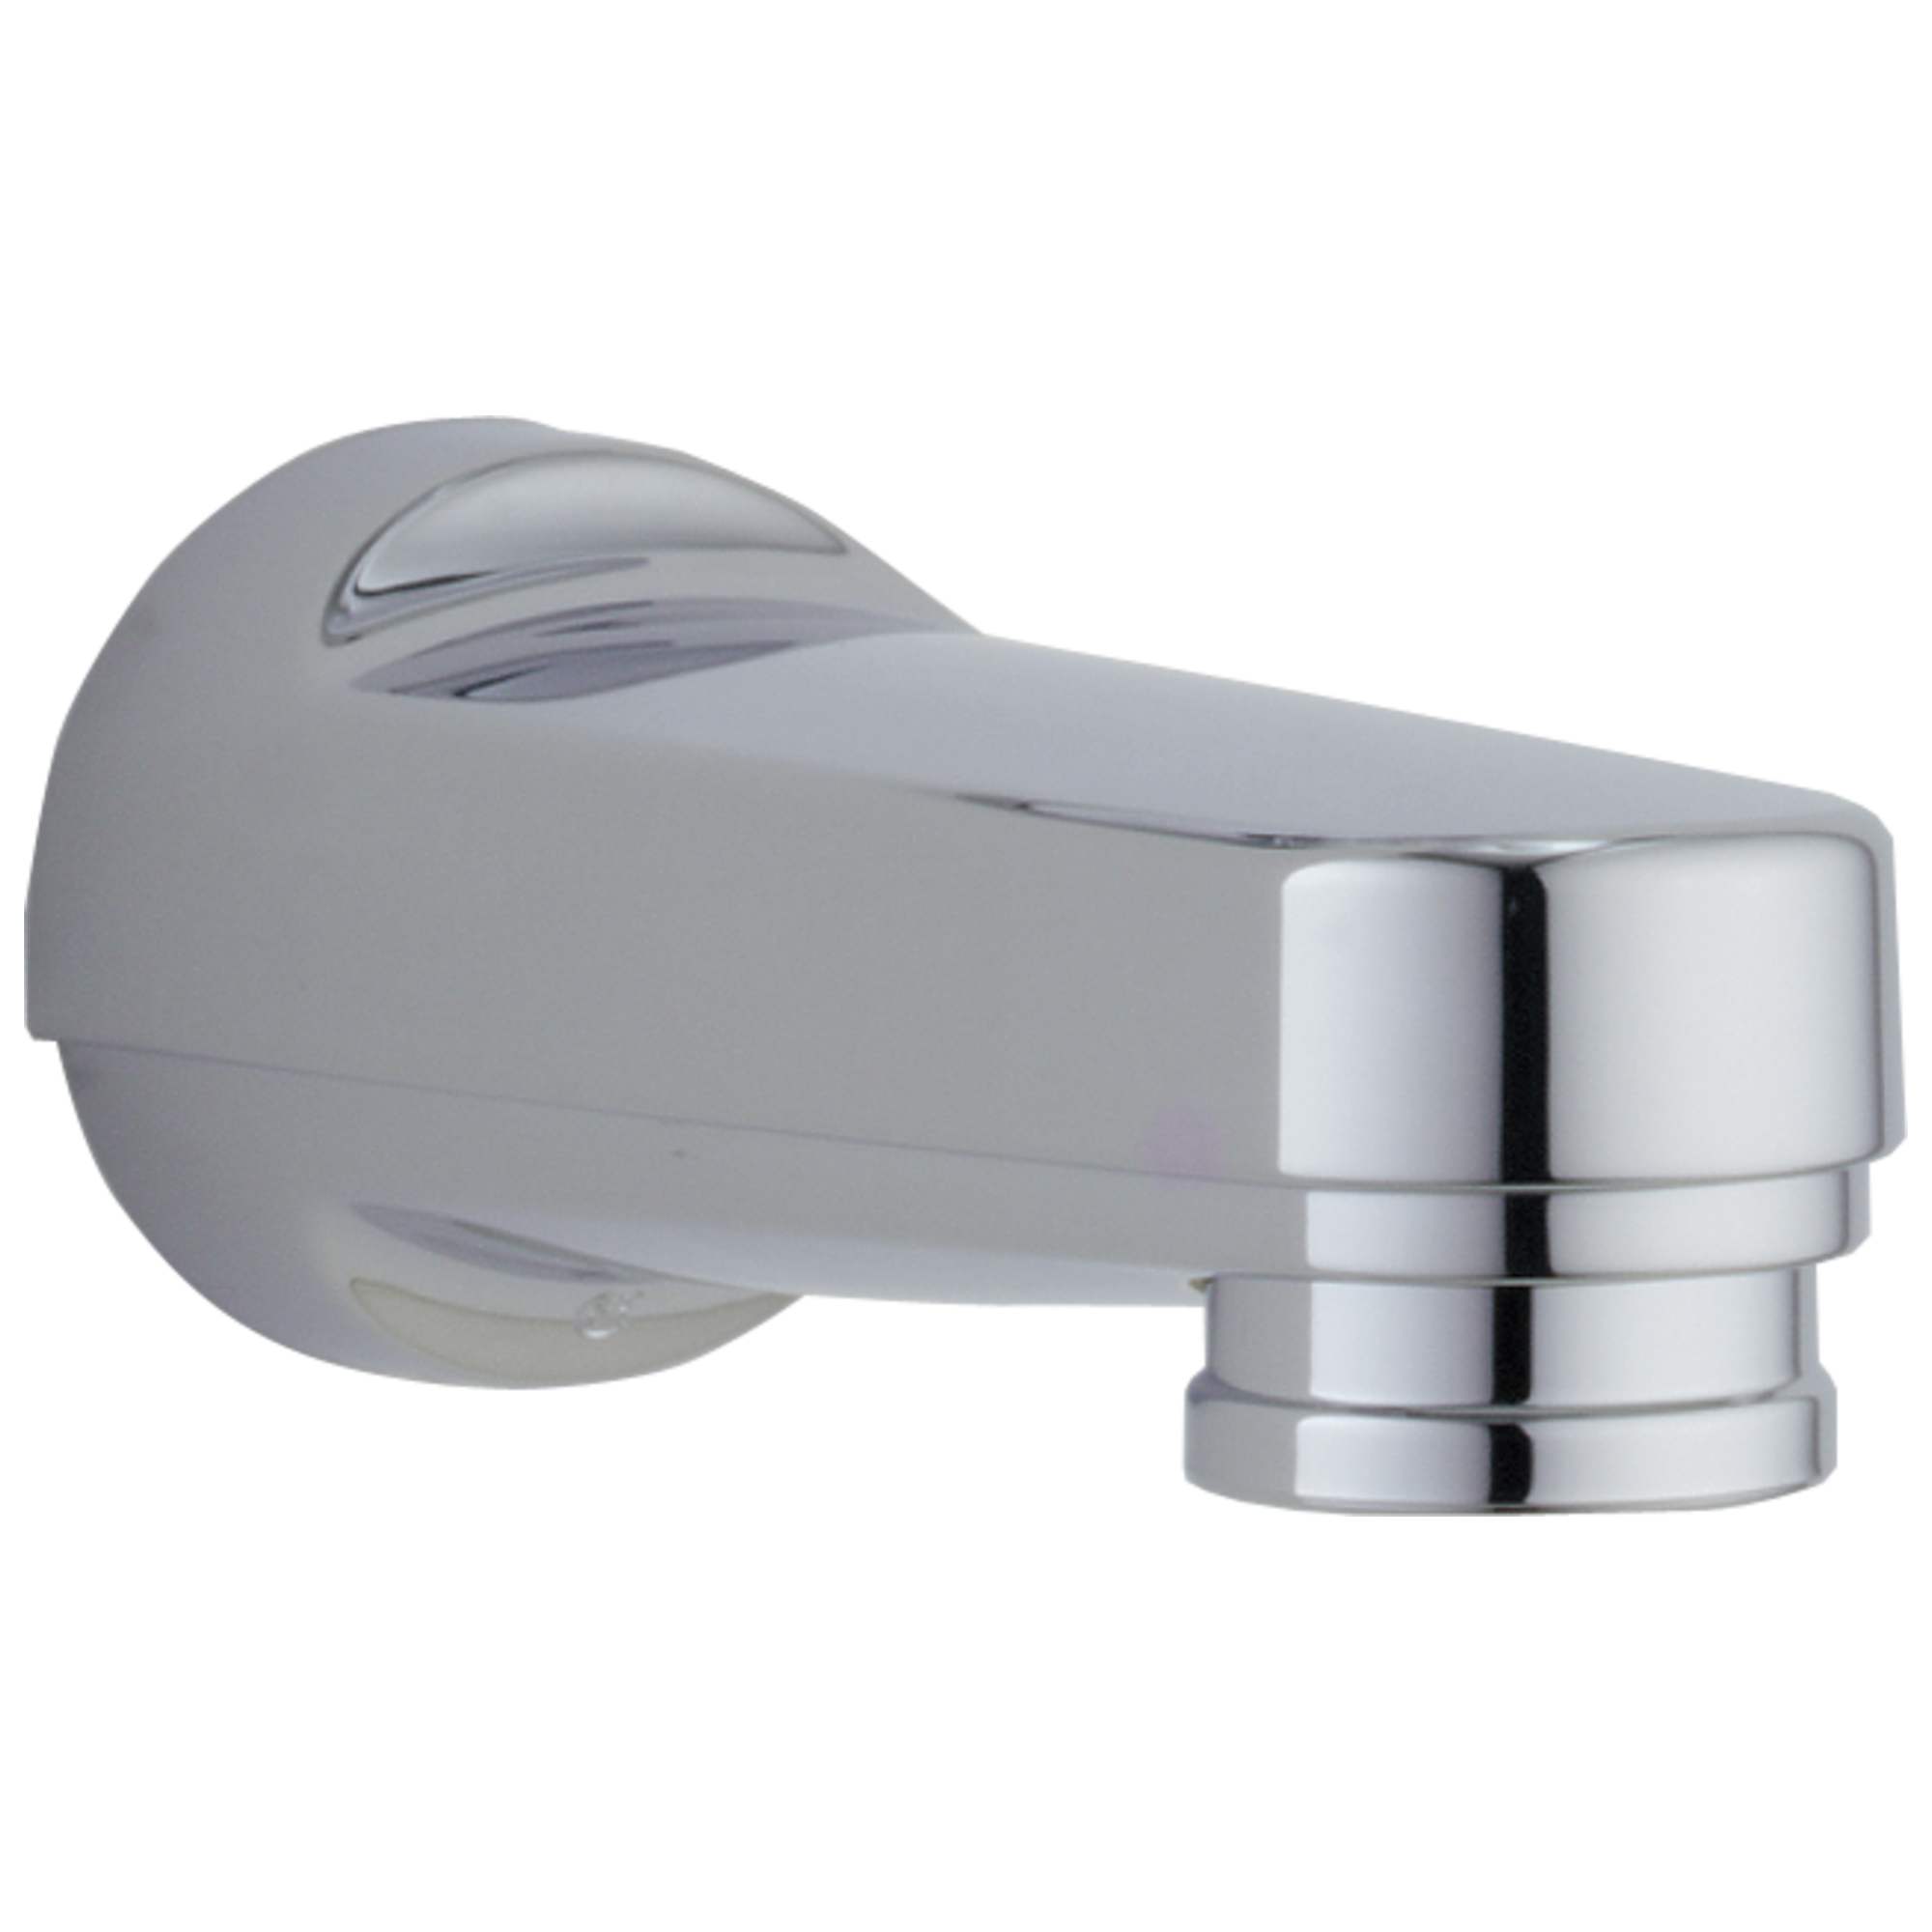 Tub Spout - Pull-down Diverter